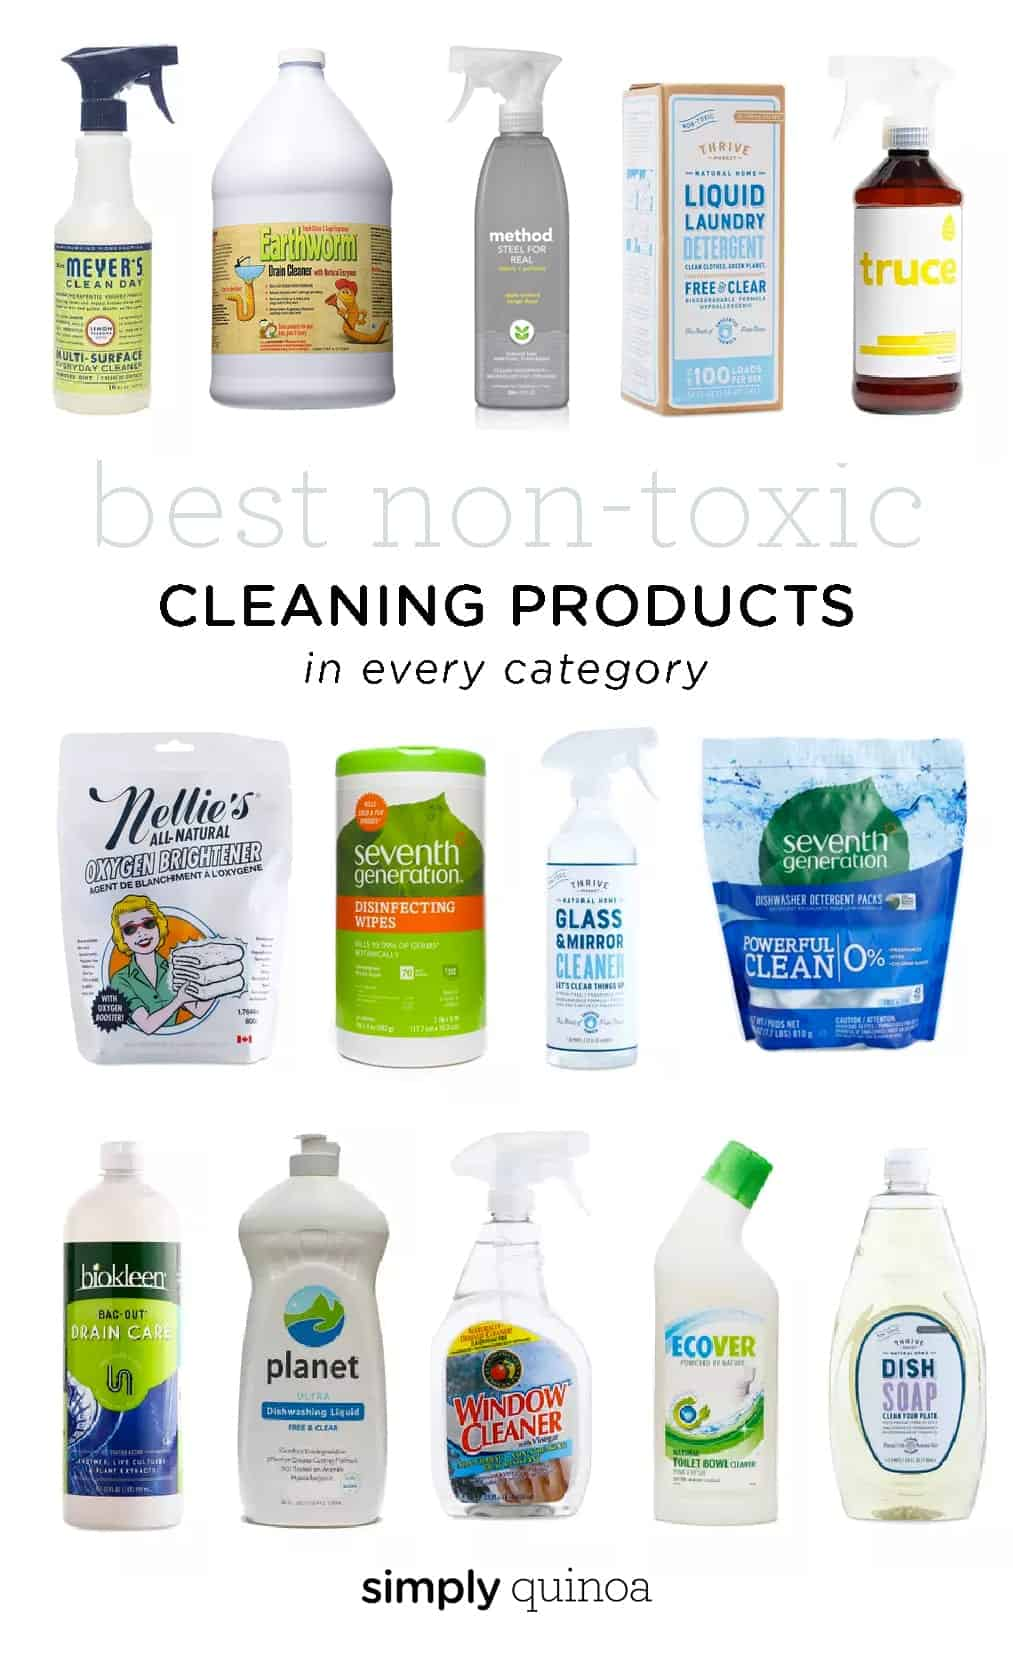 Best Non-Toxic Cleaning Products in every category!